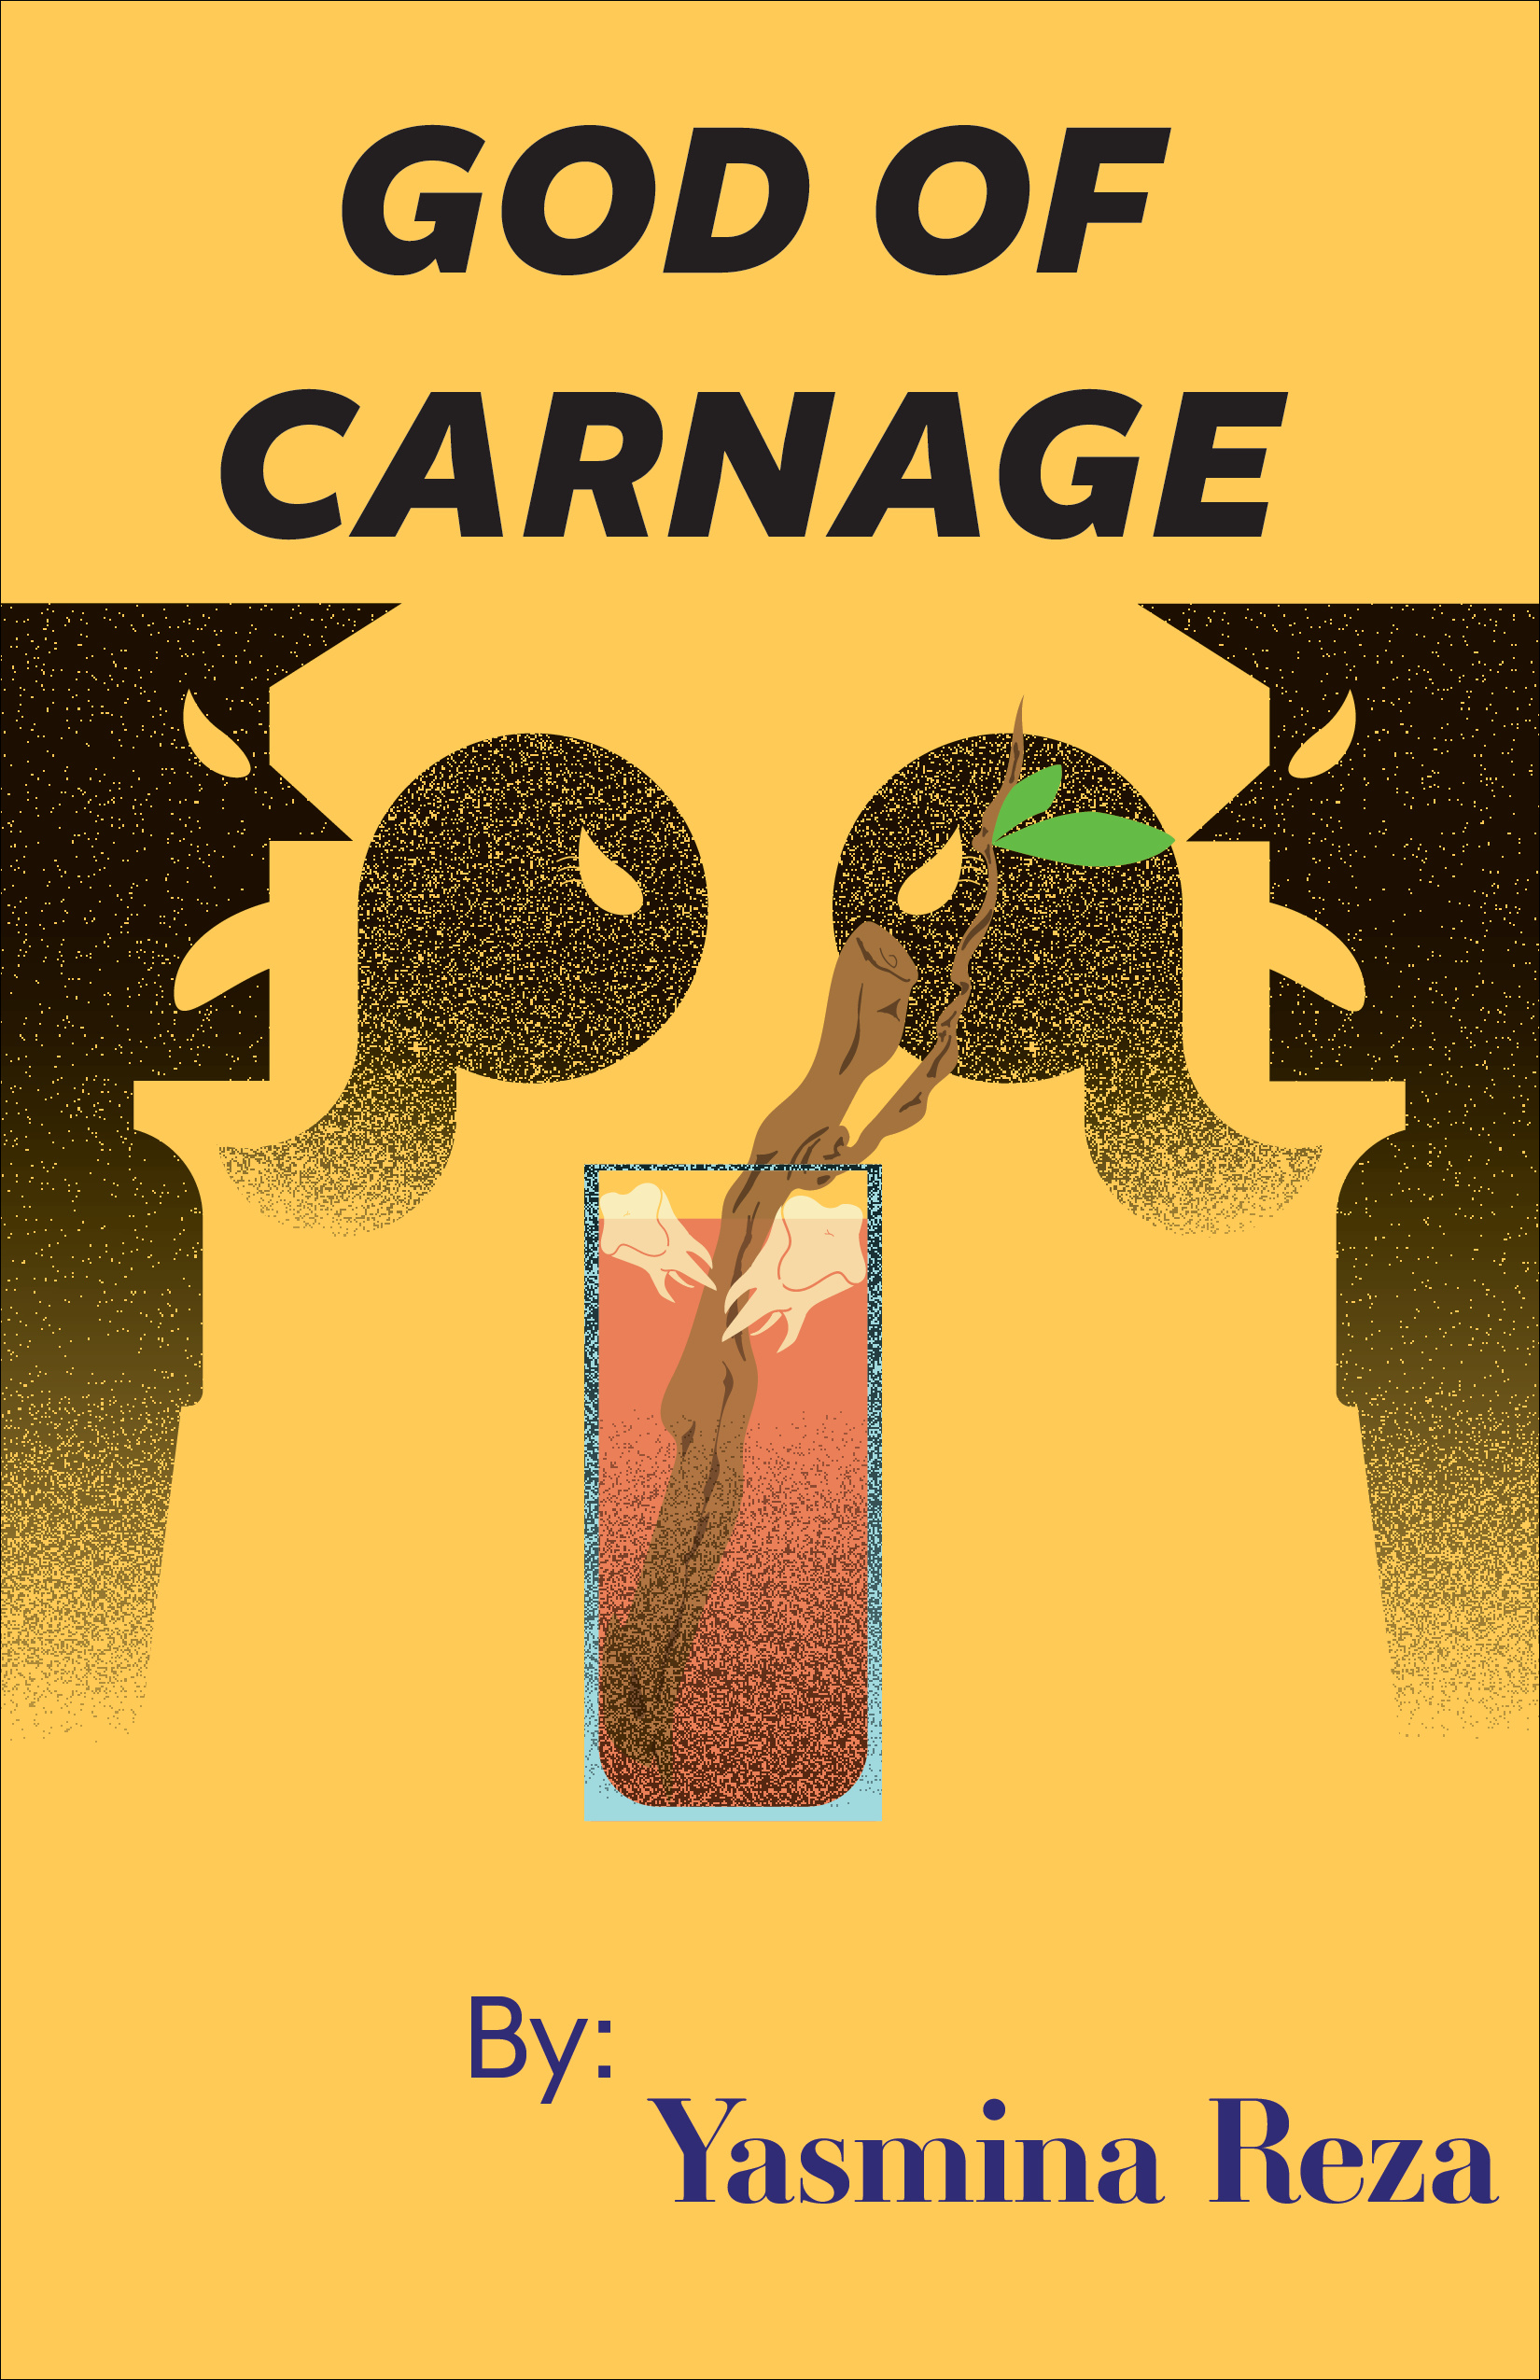 God of Carnage letter_Poster